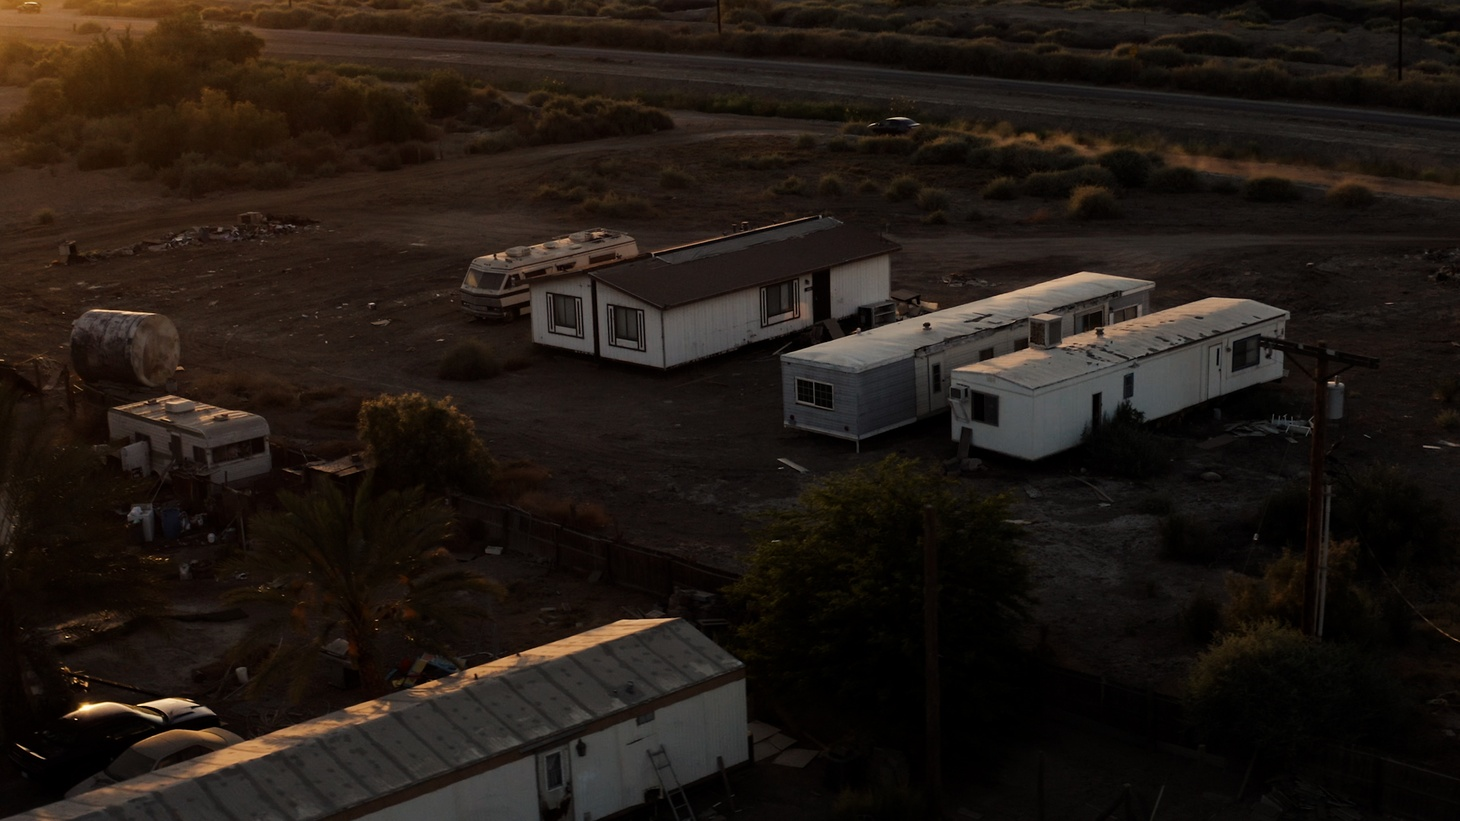 In the California town called Thermal, full-time residents are mostly Latino and undocumented, and many live in trailers off dirt roads. They work on farms and in luxury resorts just a few miles away.